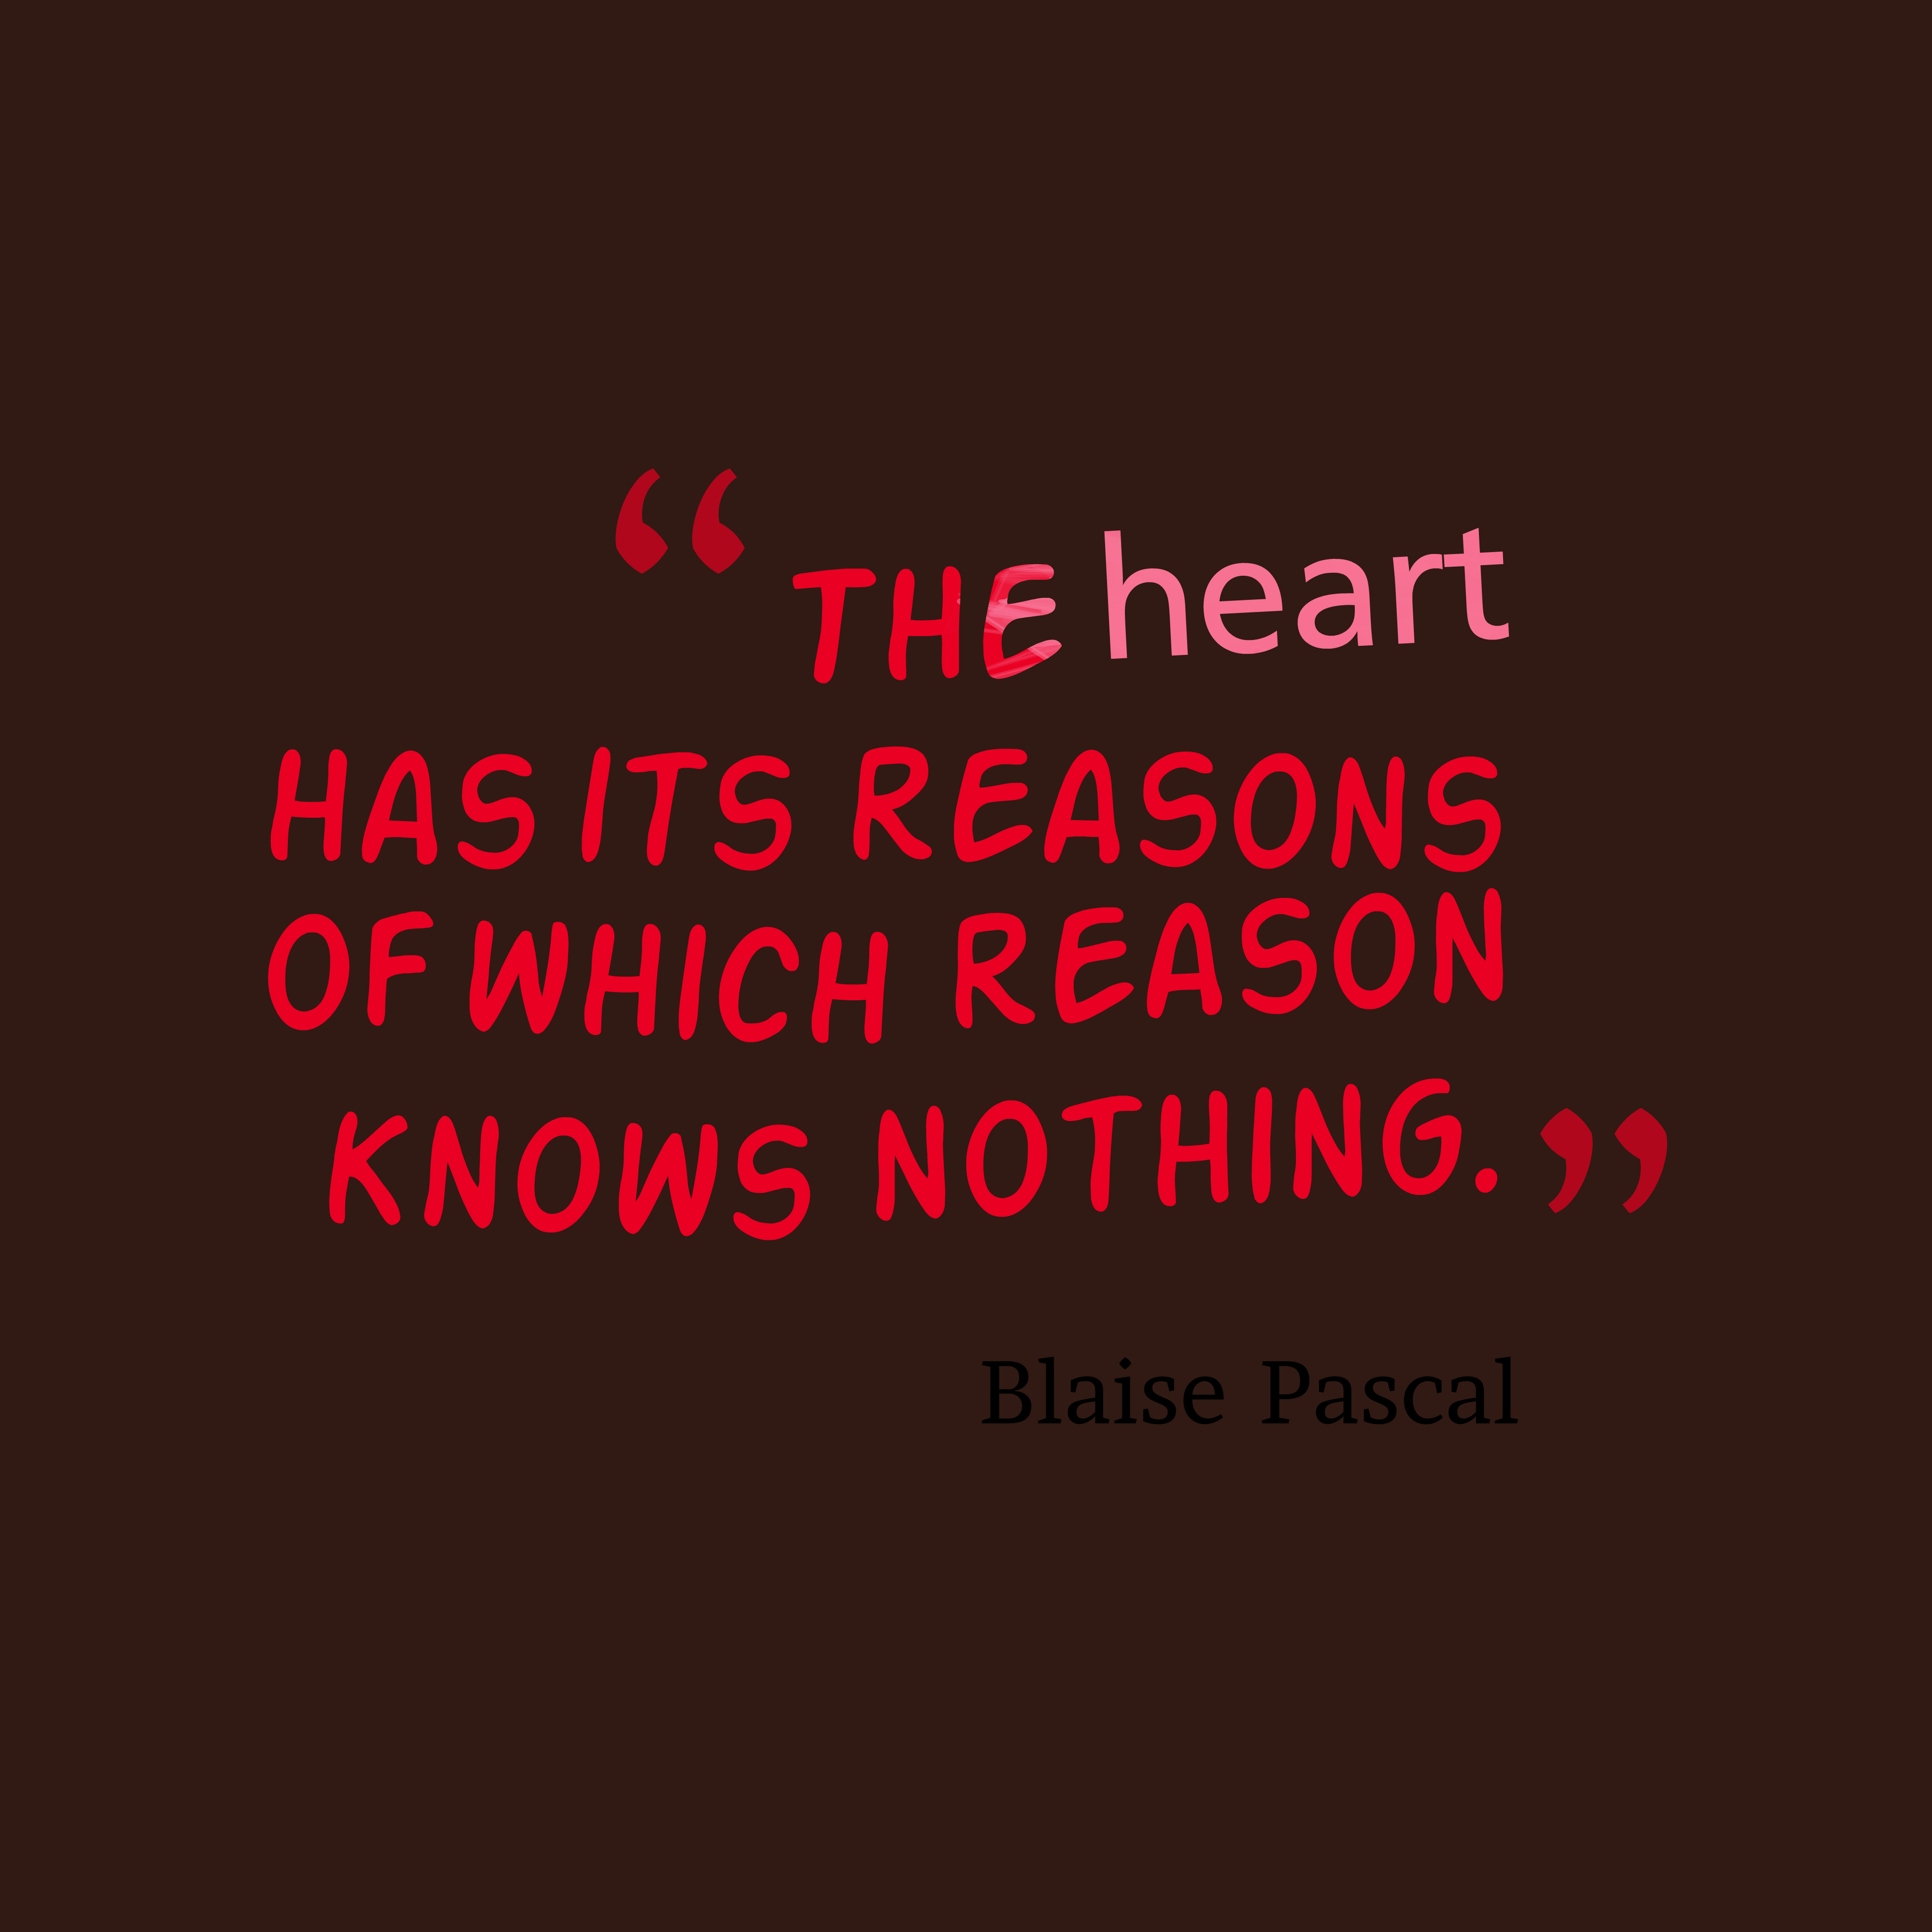 Picture Blaise Pascal quote about heart. | QuotesCover.com